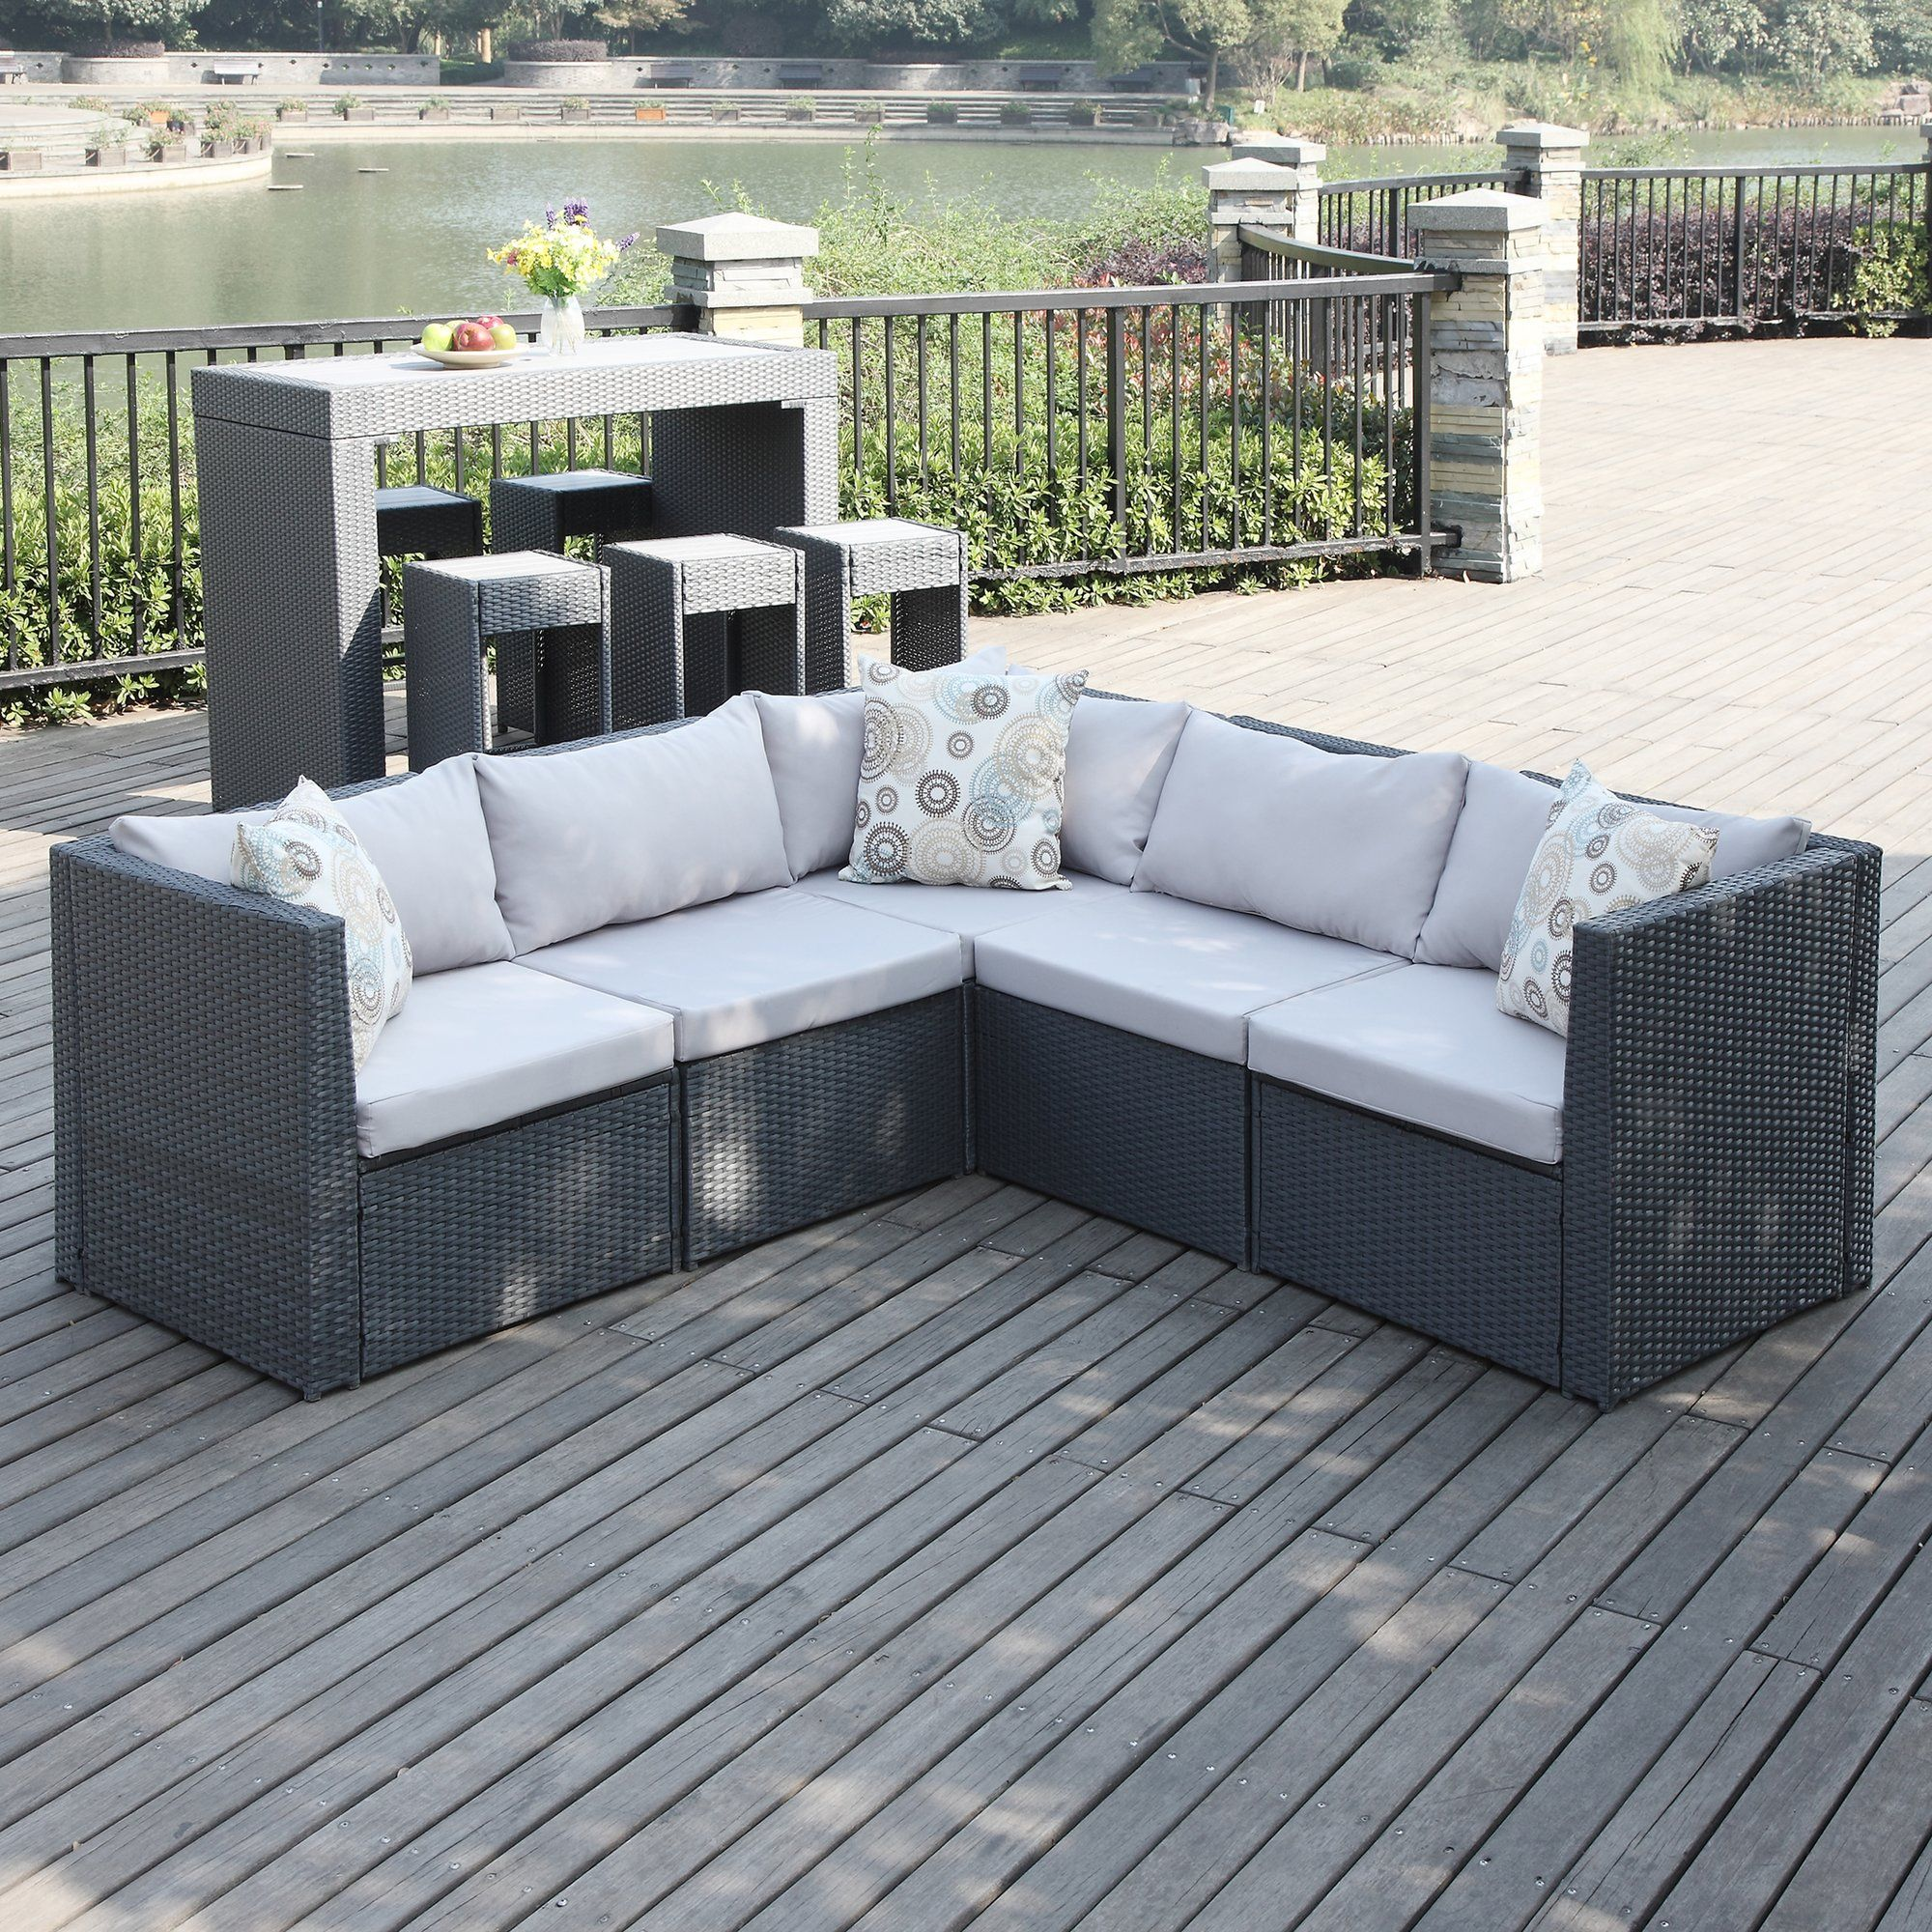 Larsen Patio Sectional With Cushions Outdoor Sofa Patio